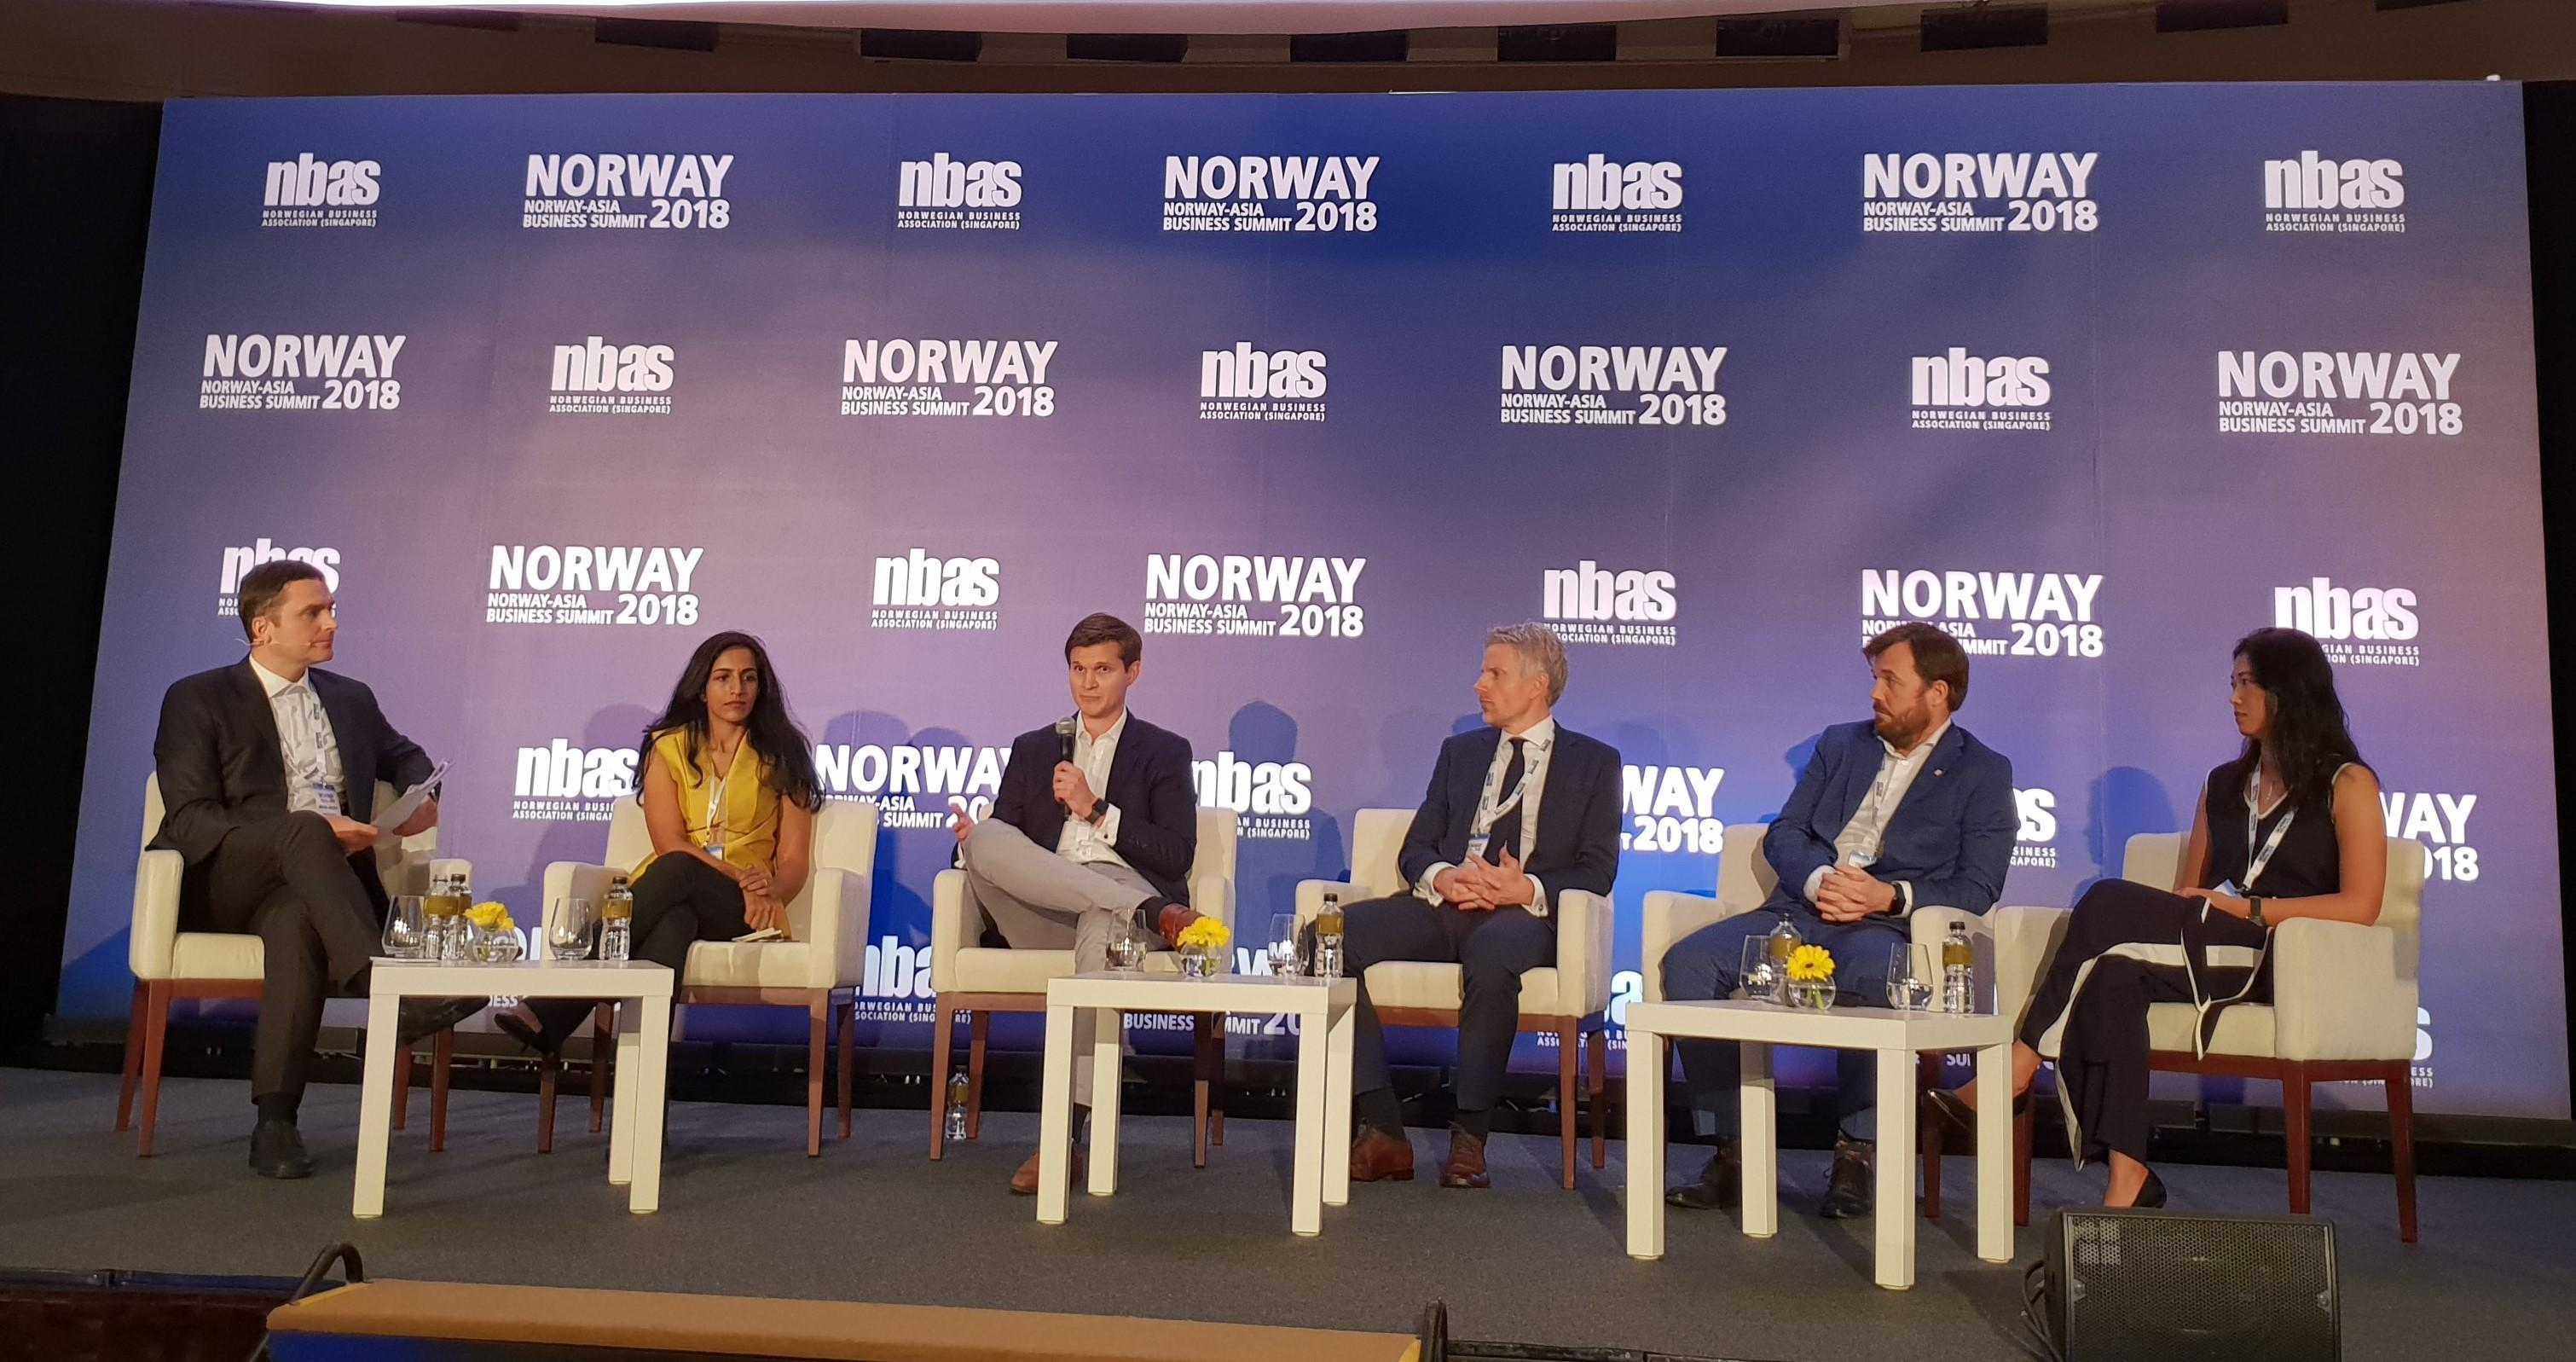 Norway Asia Business Summit